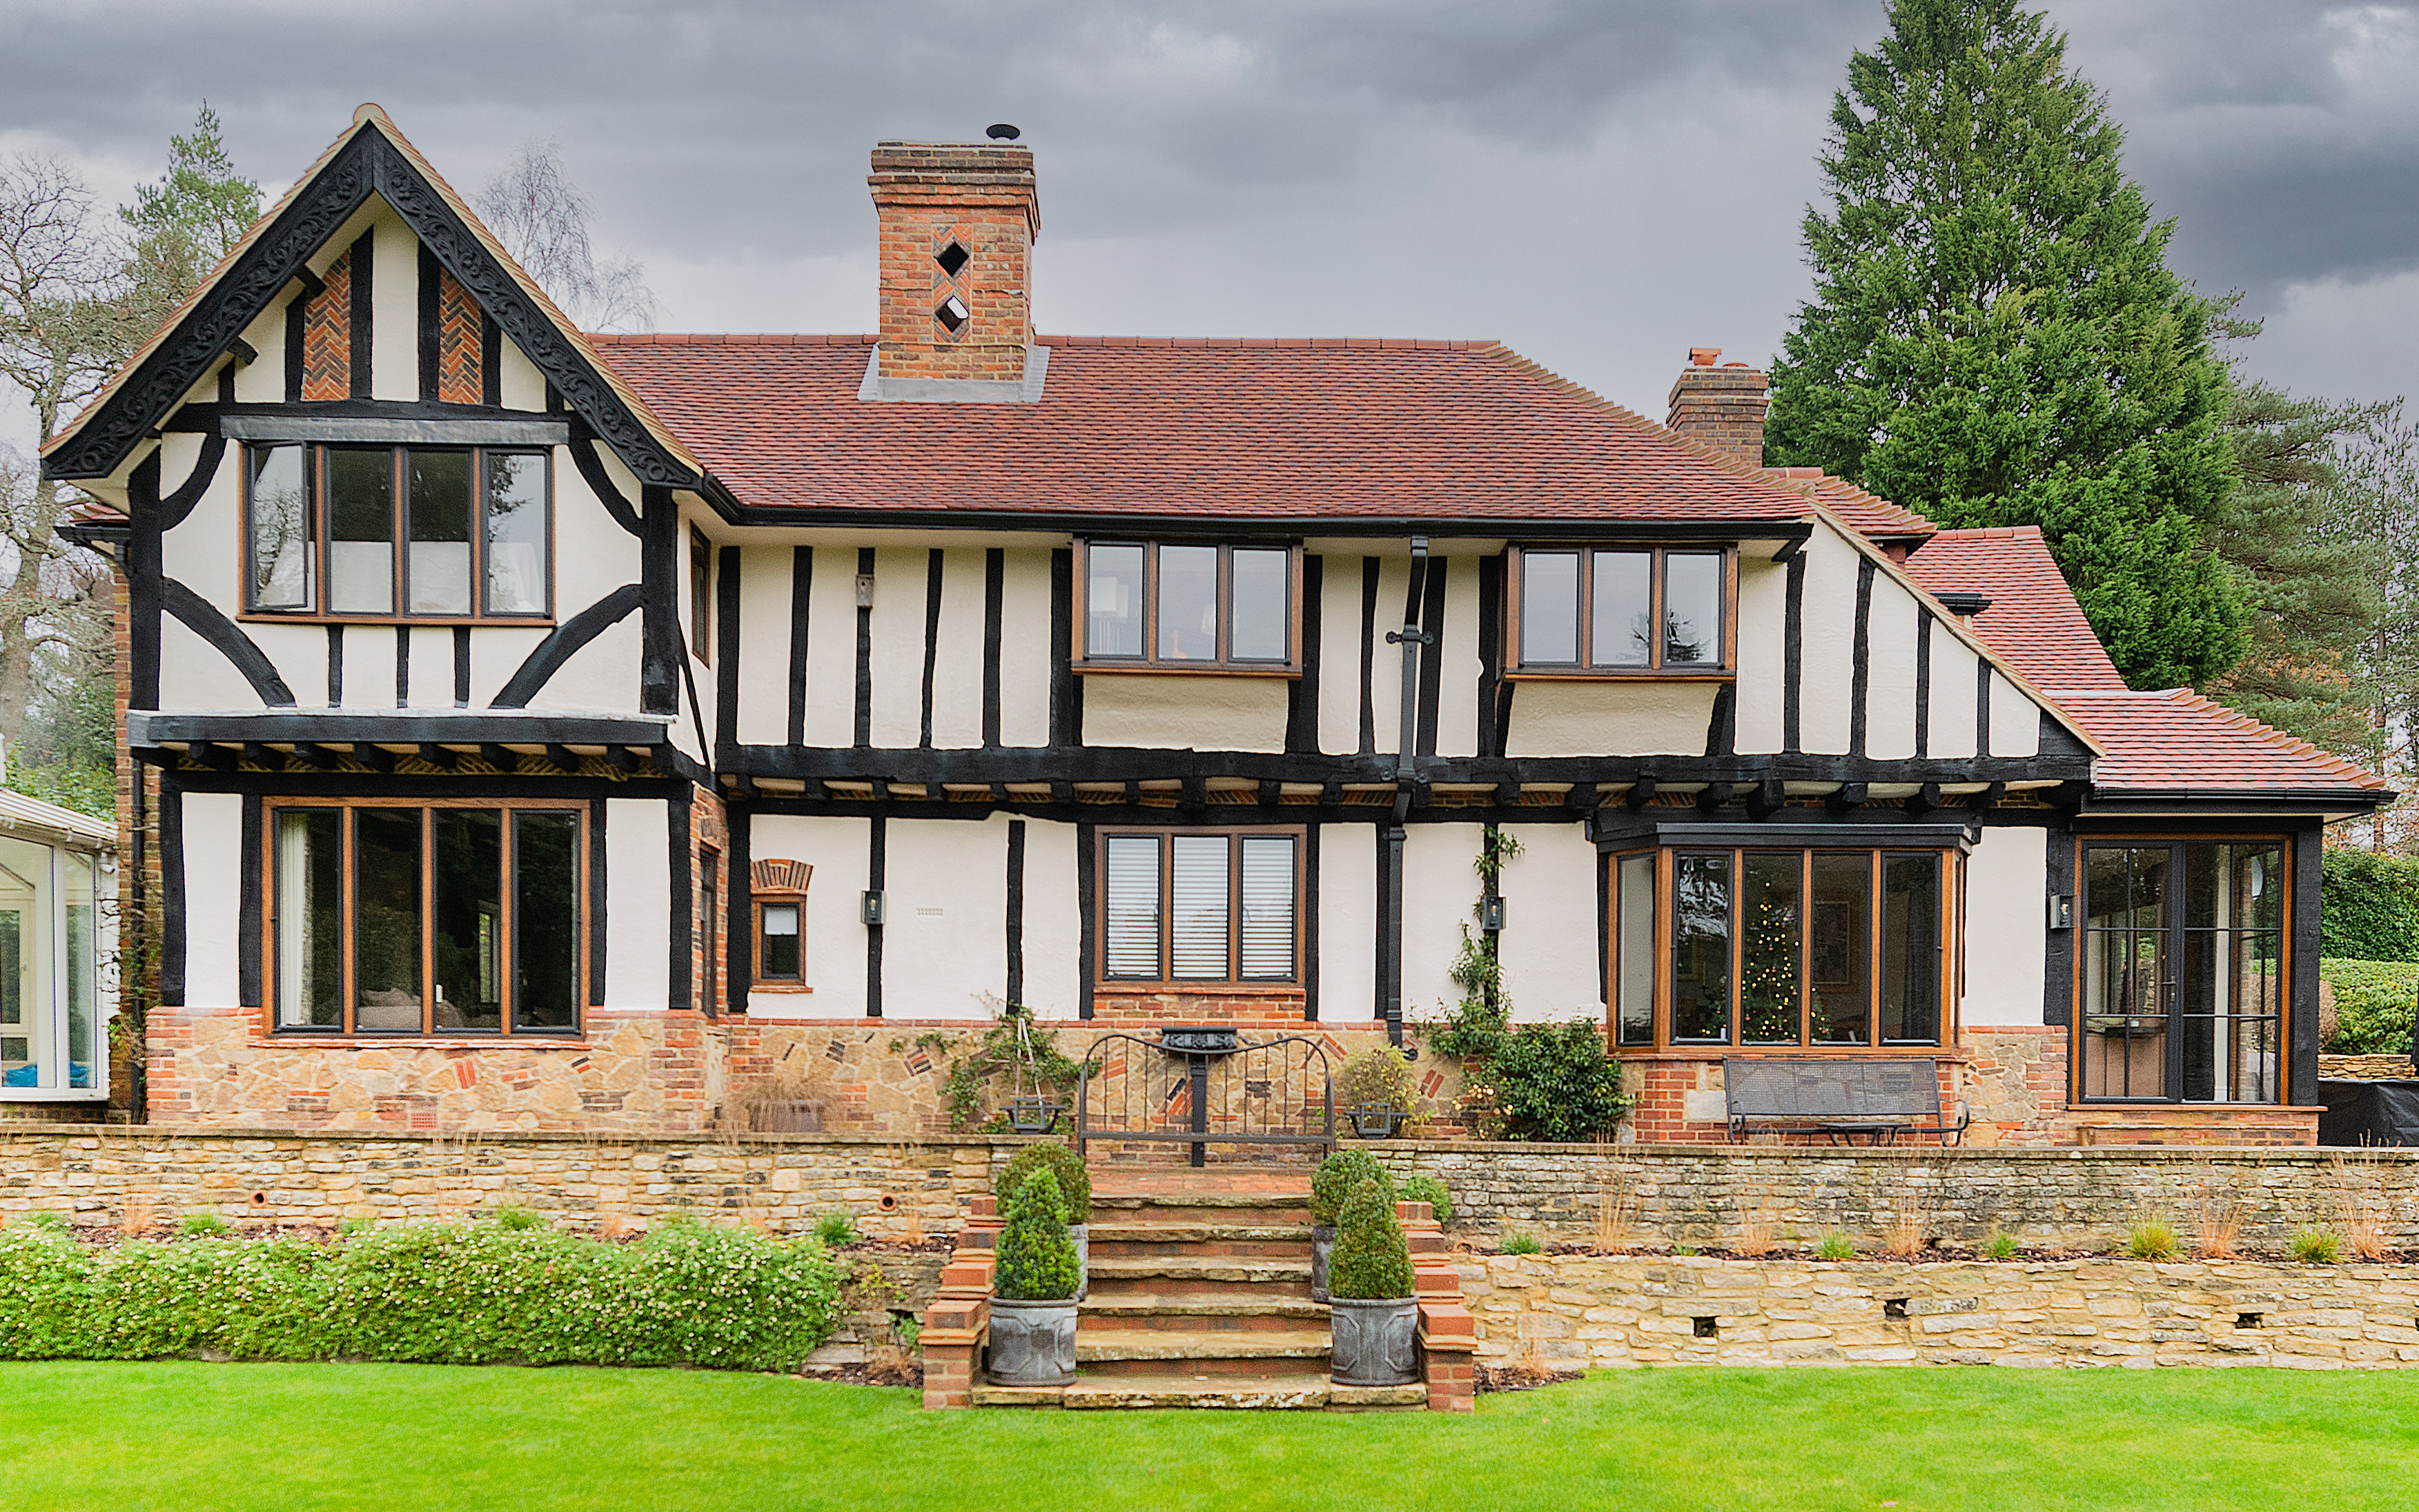 Thermally efficient EB20 steel windows chosen for beautiful country house